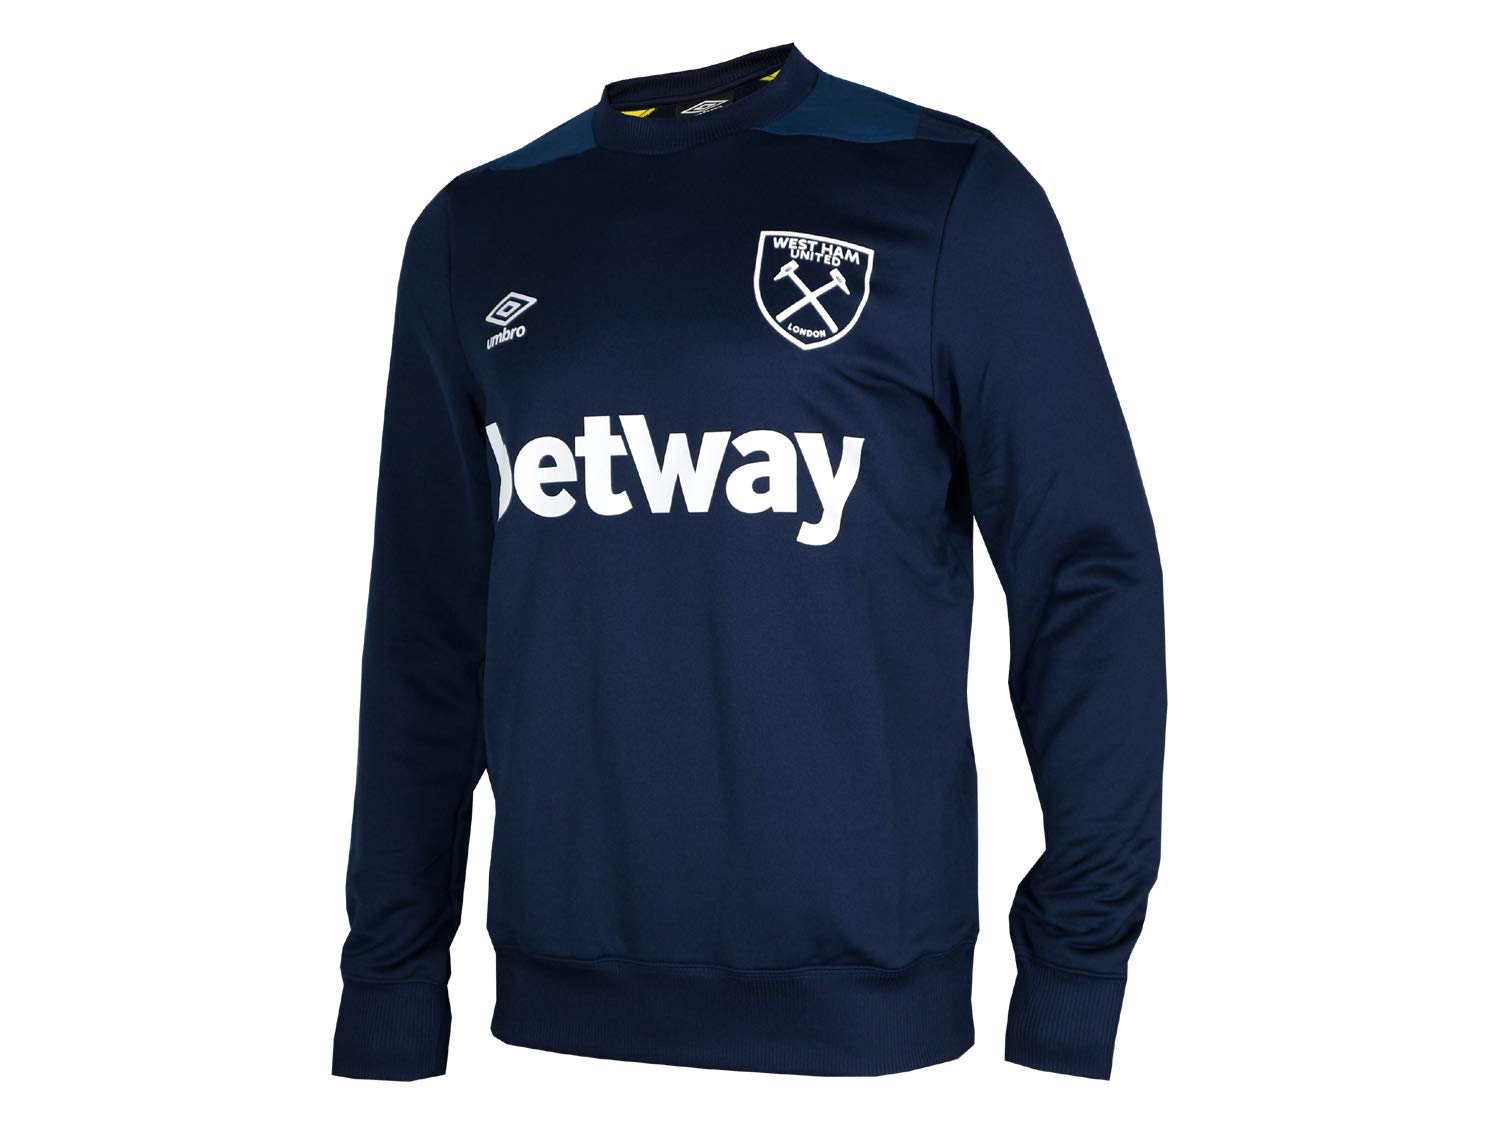 Umbro West Ham United - Sudadera, Color Azul Oscuro: Amazon.es: Deportes y aire libre